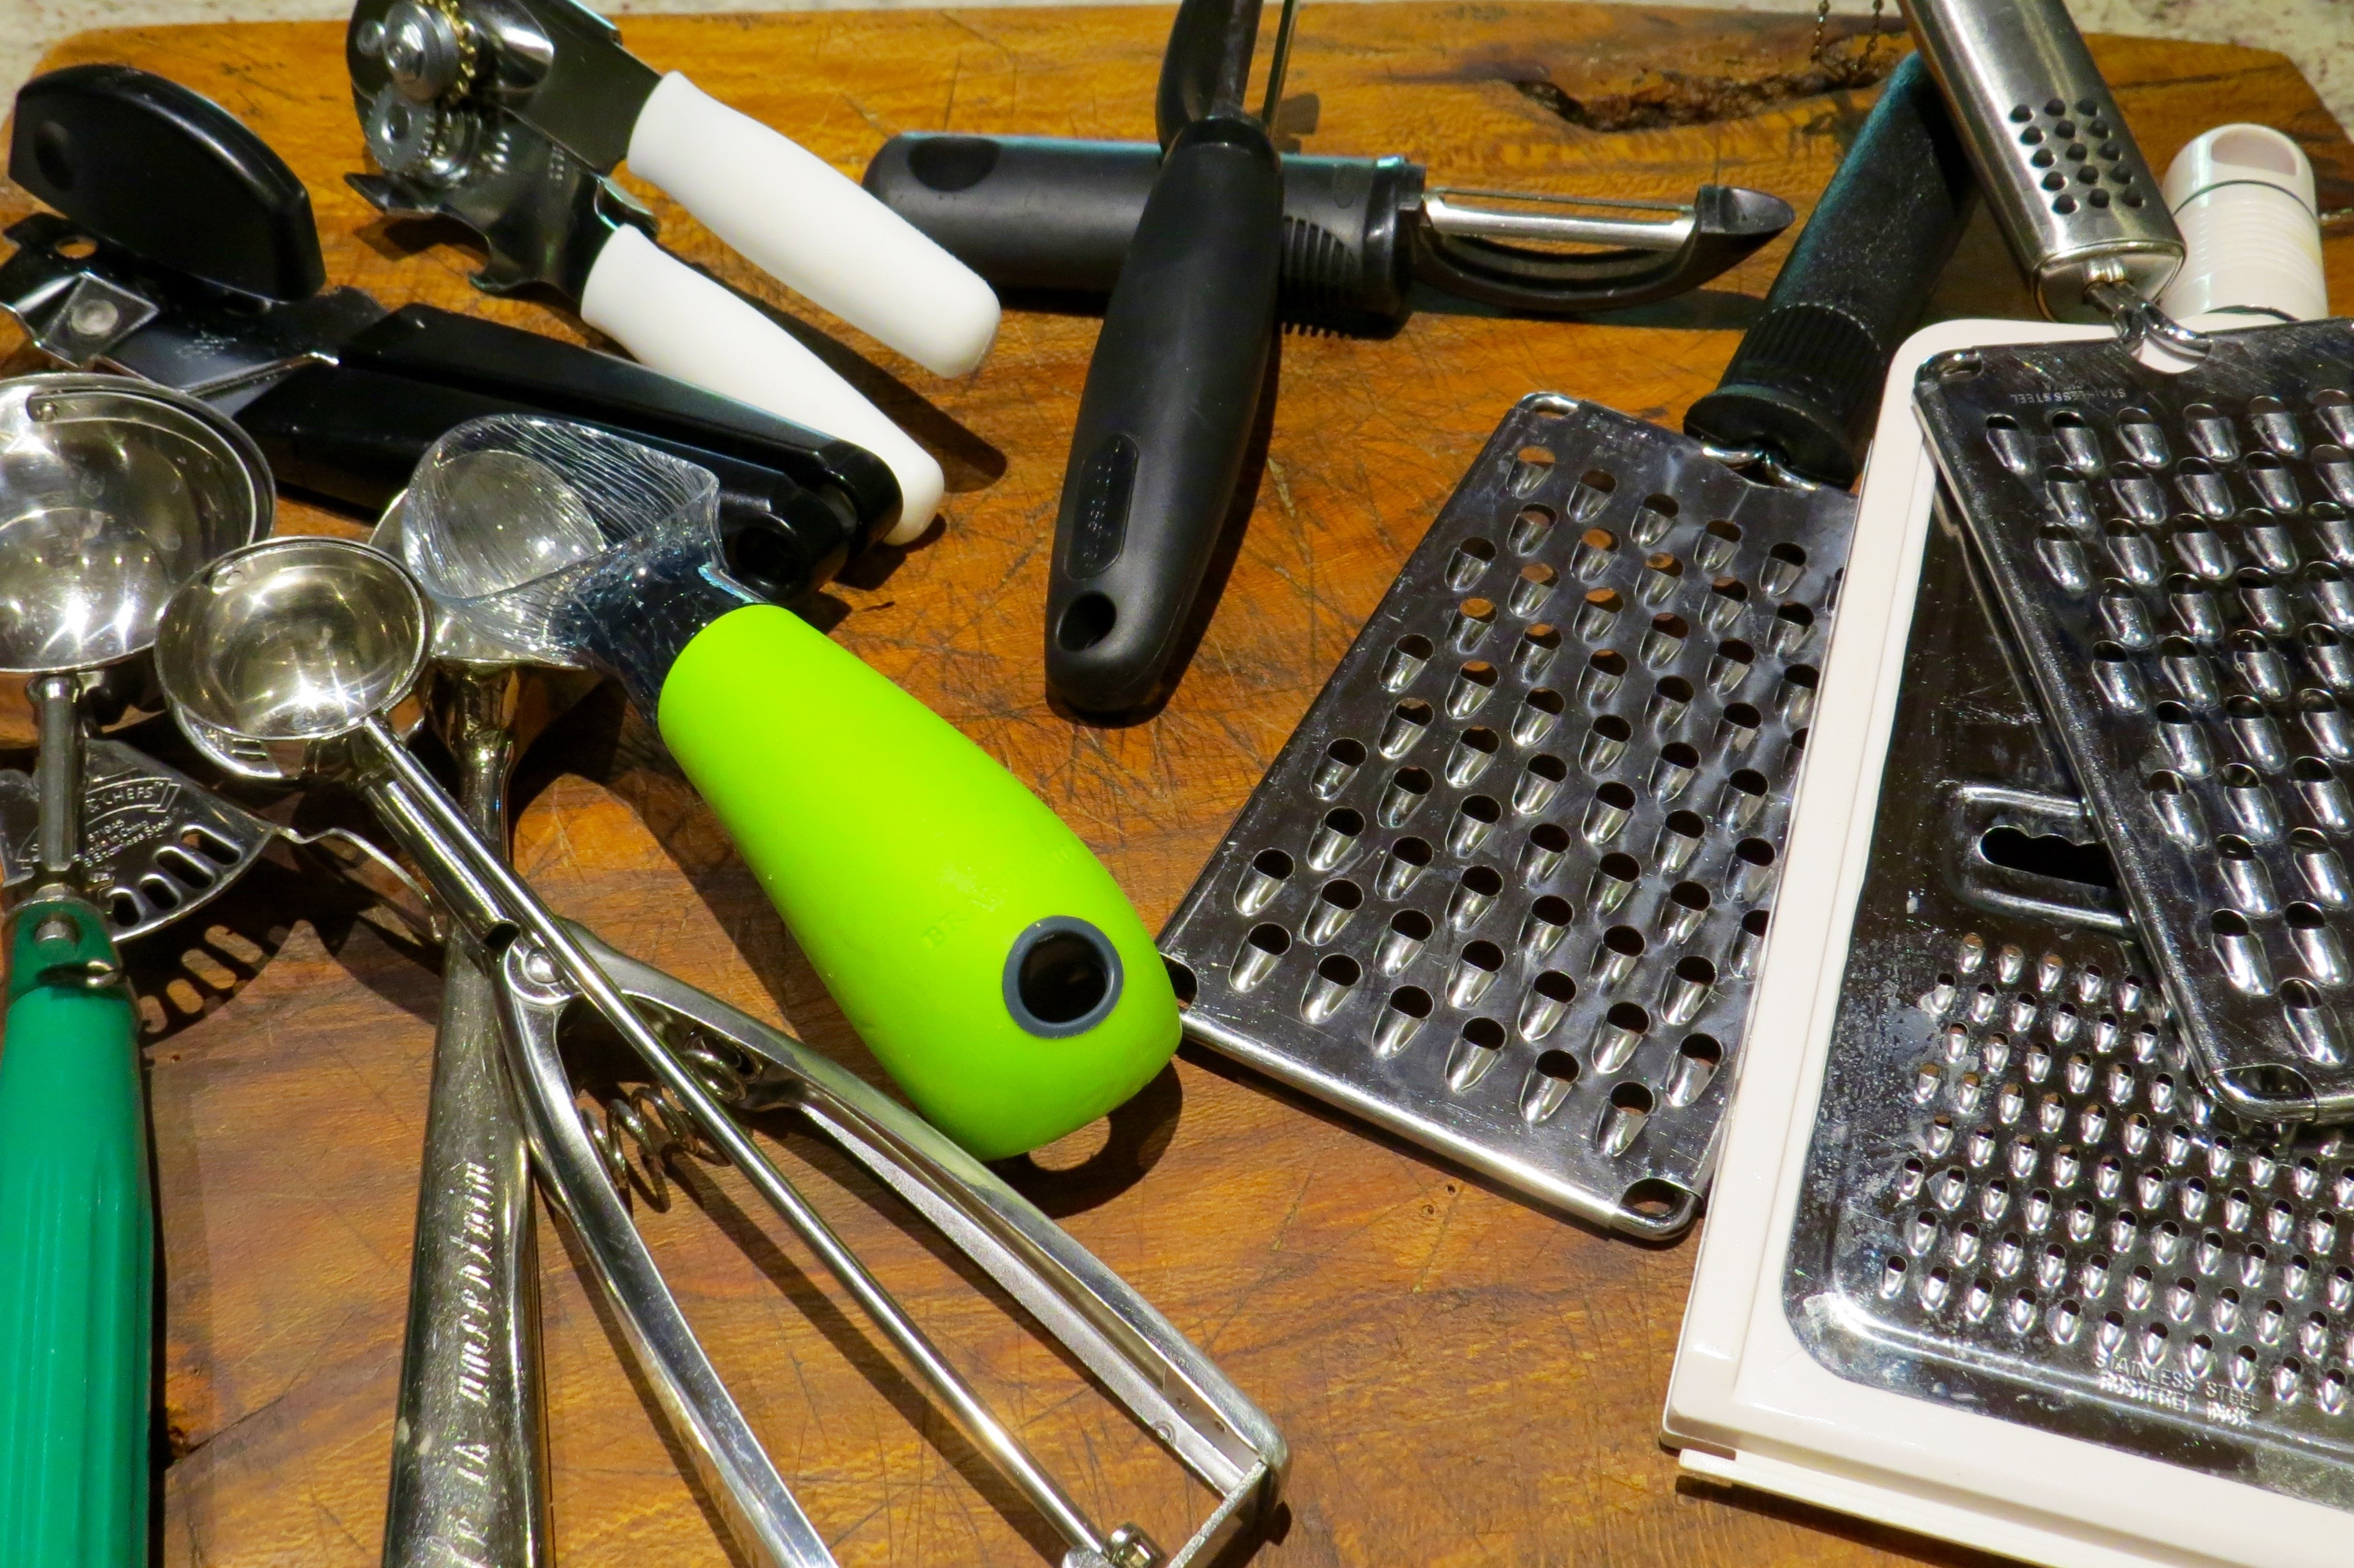 ANOTHER KITCHEN PURGE. WHO NEEDS 4 ICE CREAM SCOOPS, THREE CHEESE GRATERS, 2 CAN OPENERS OR 2 VEGGIE PEELERS?